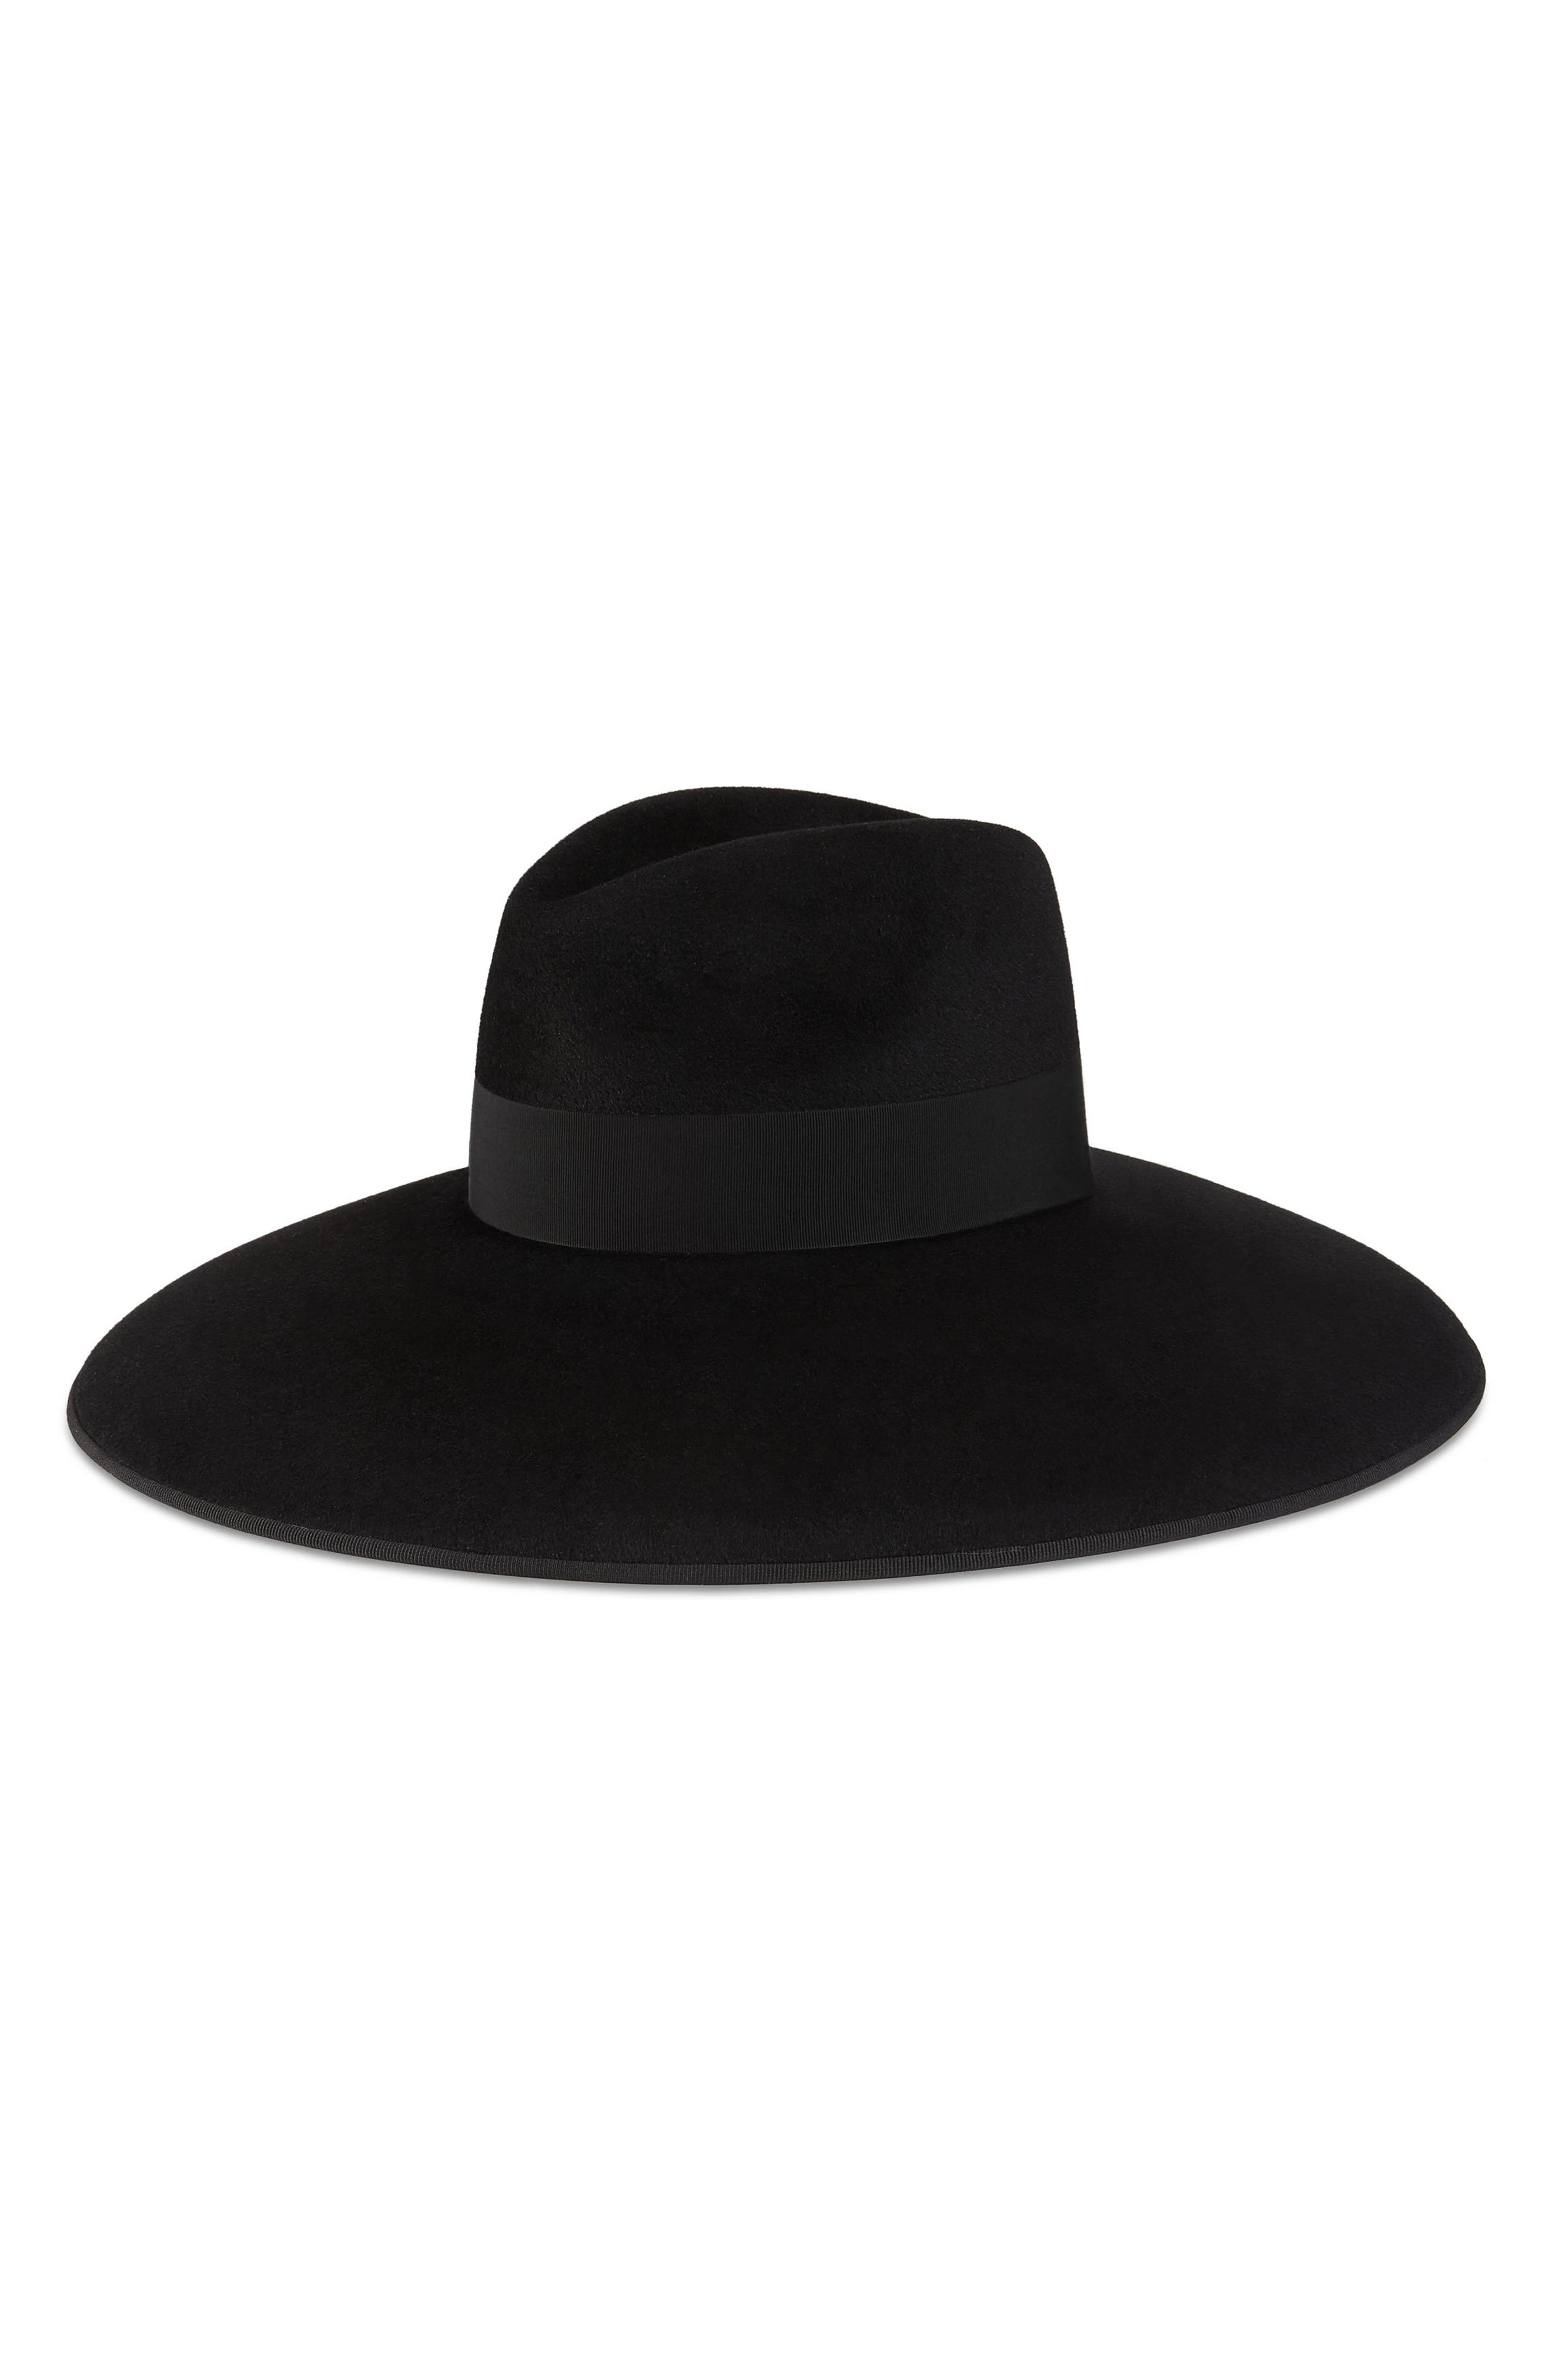 Alternate Image 2  - Gucci Fur Felt Wide Brim Hat